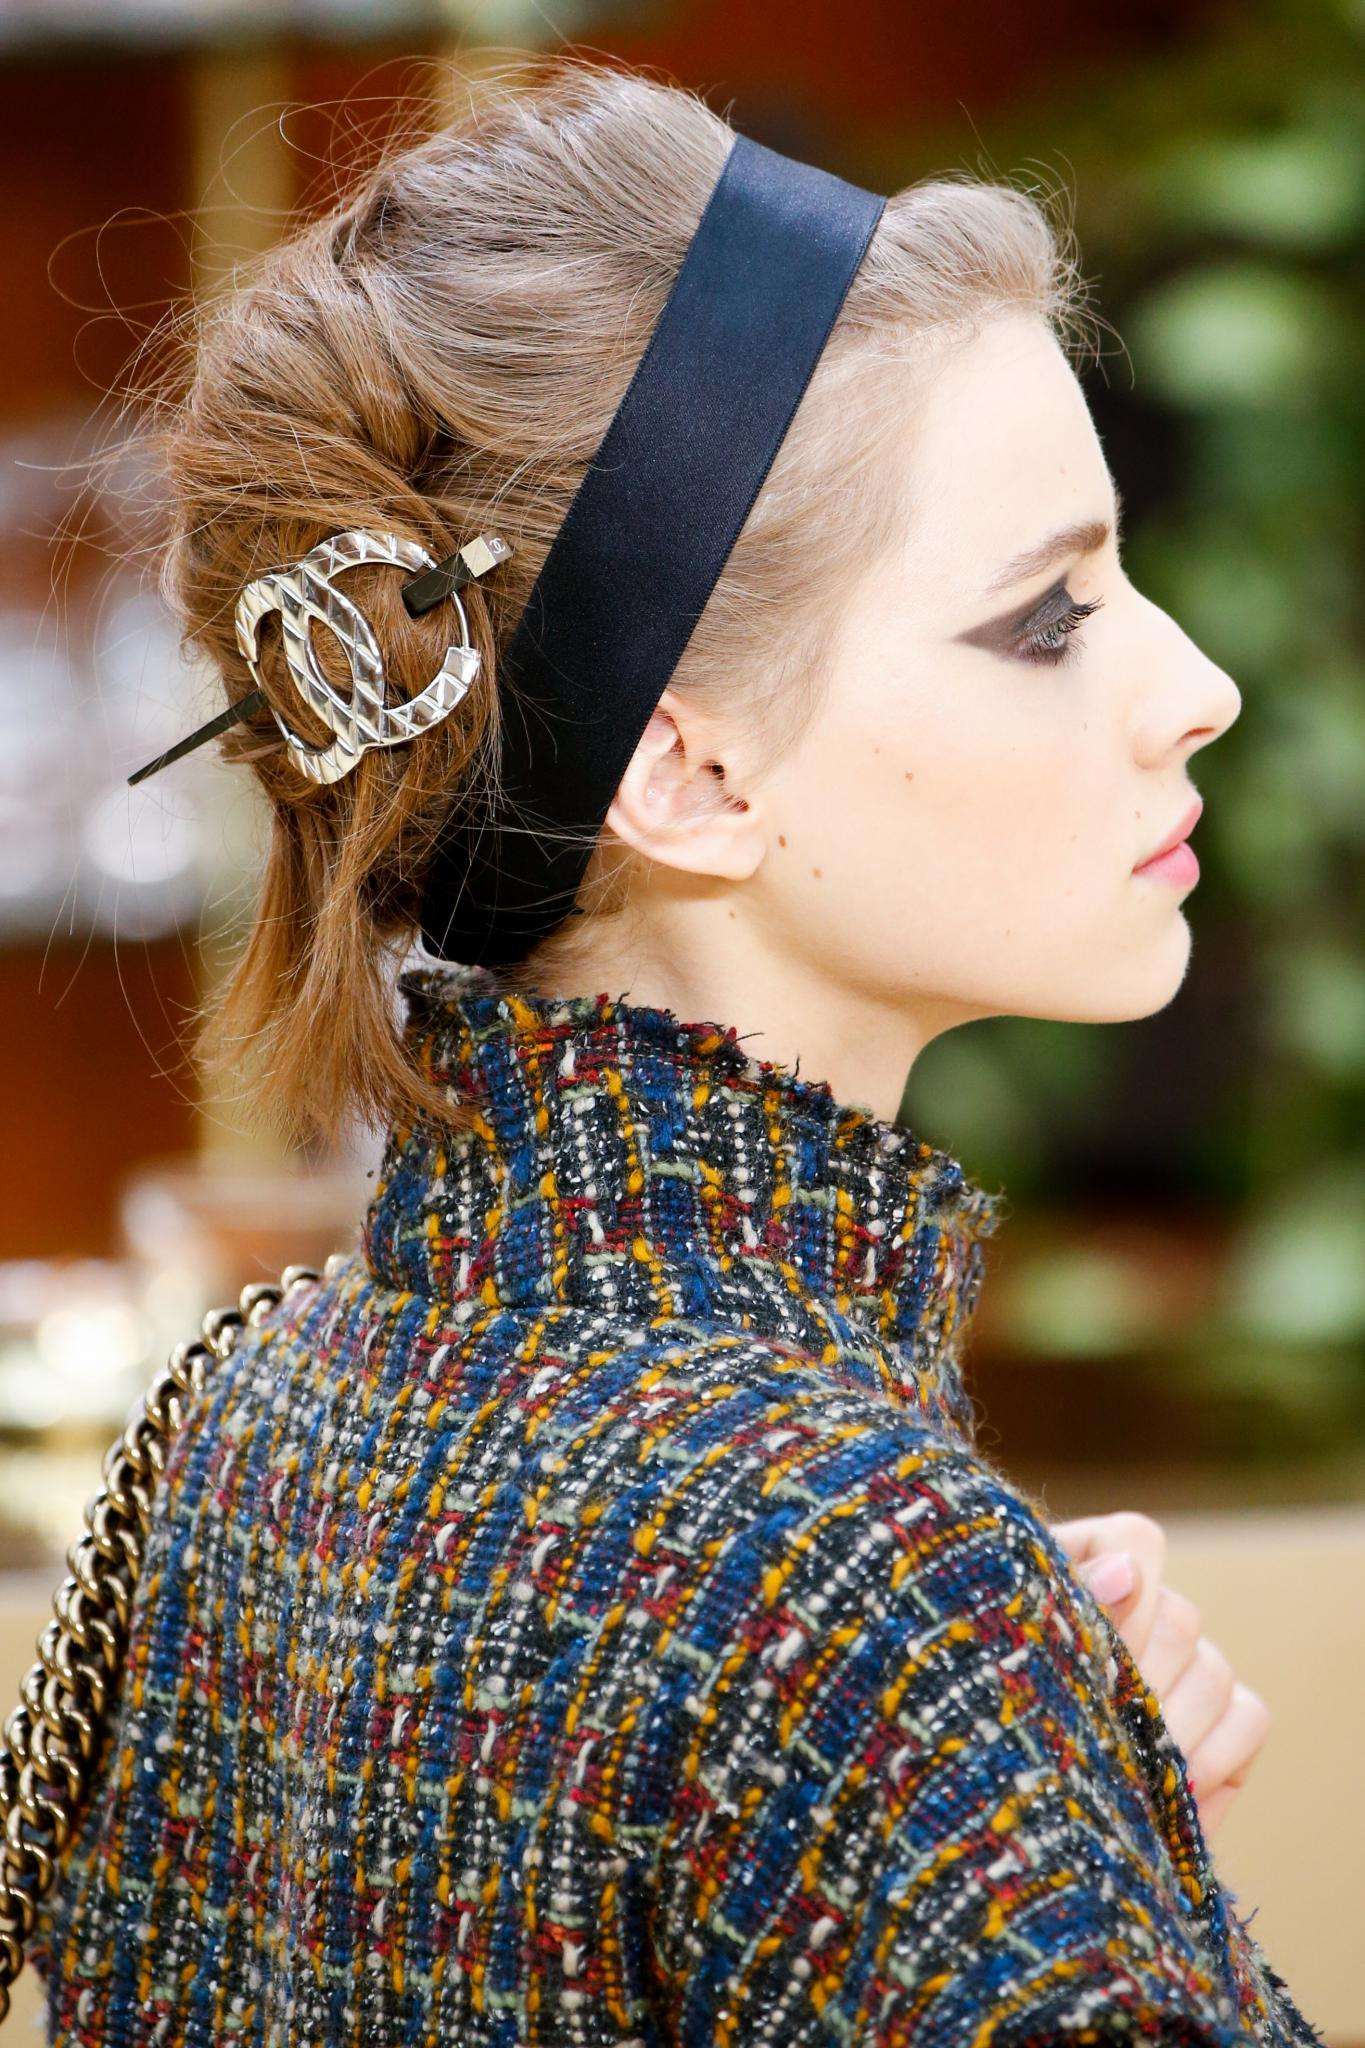 close up shot of model on the chanel runway with vintage updo hairstyle with hair accessory, wearing chanel clothing